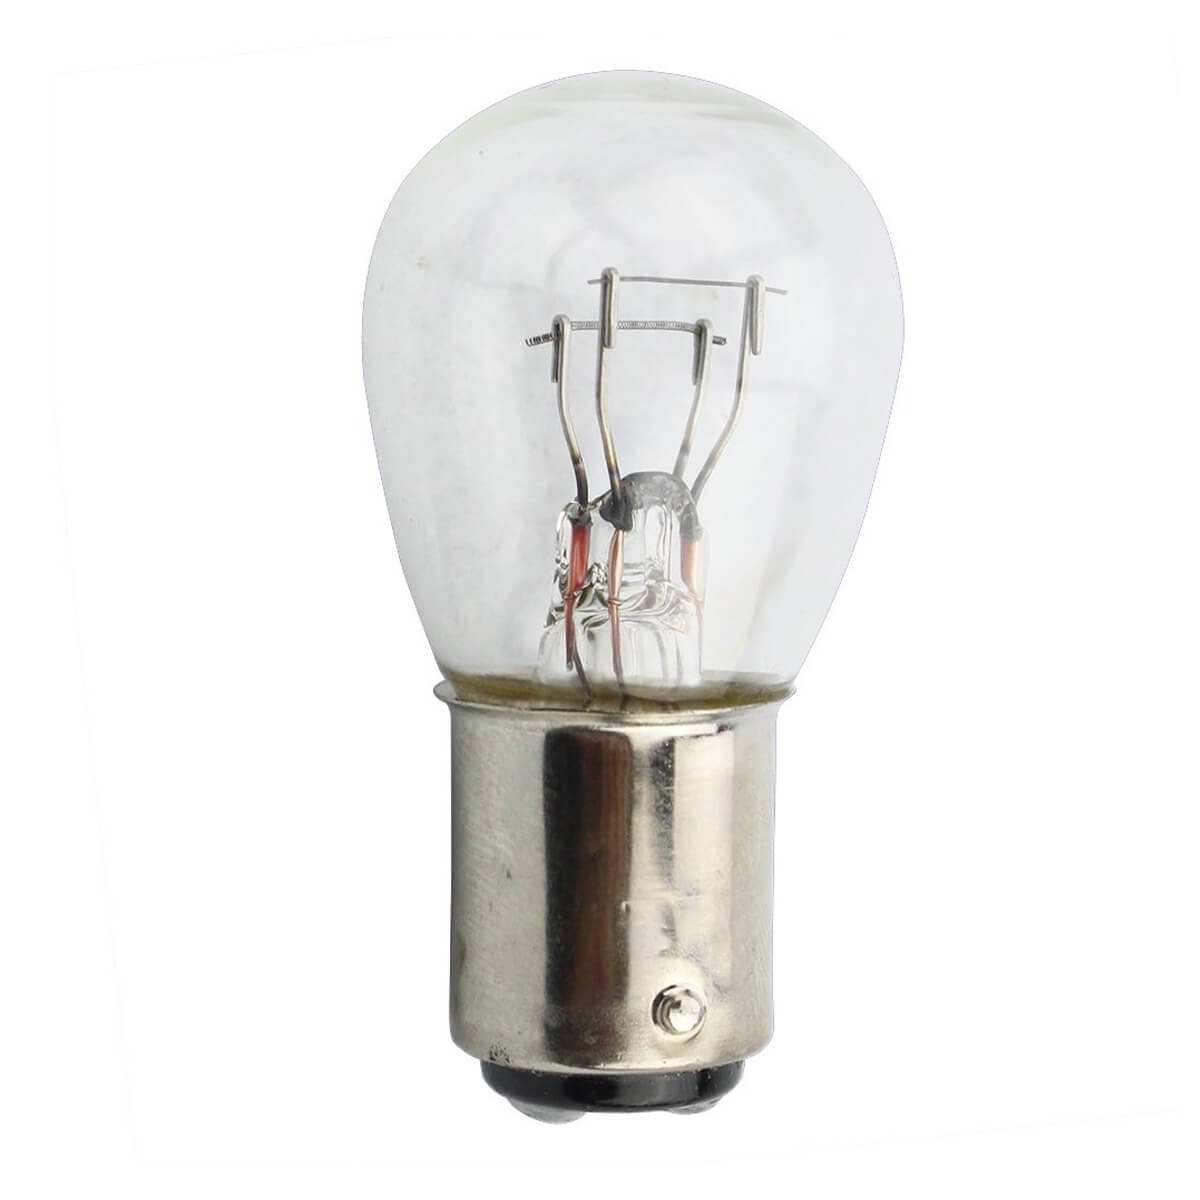 CITROEN 2 CV Brake Light Bulb